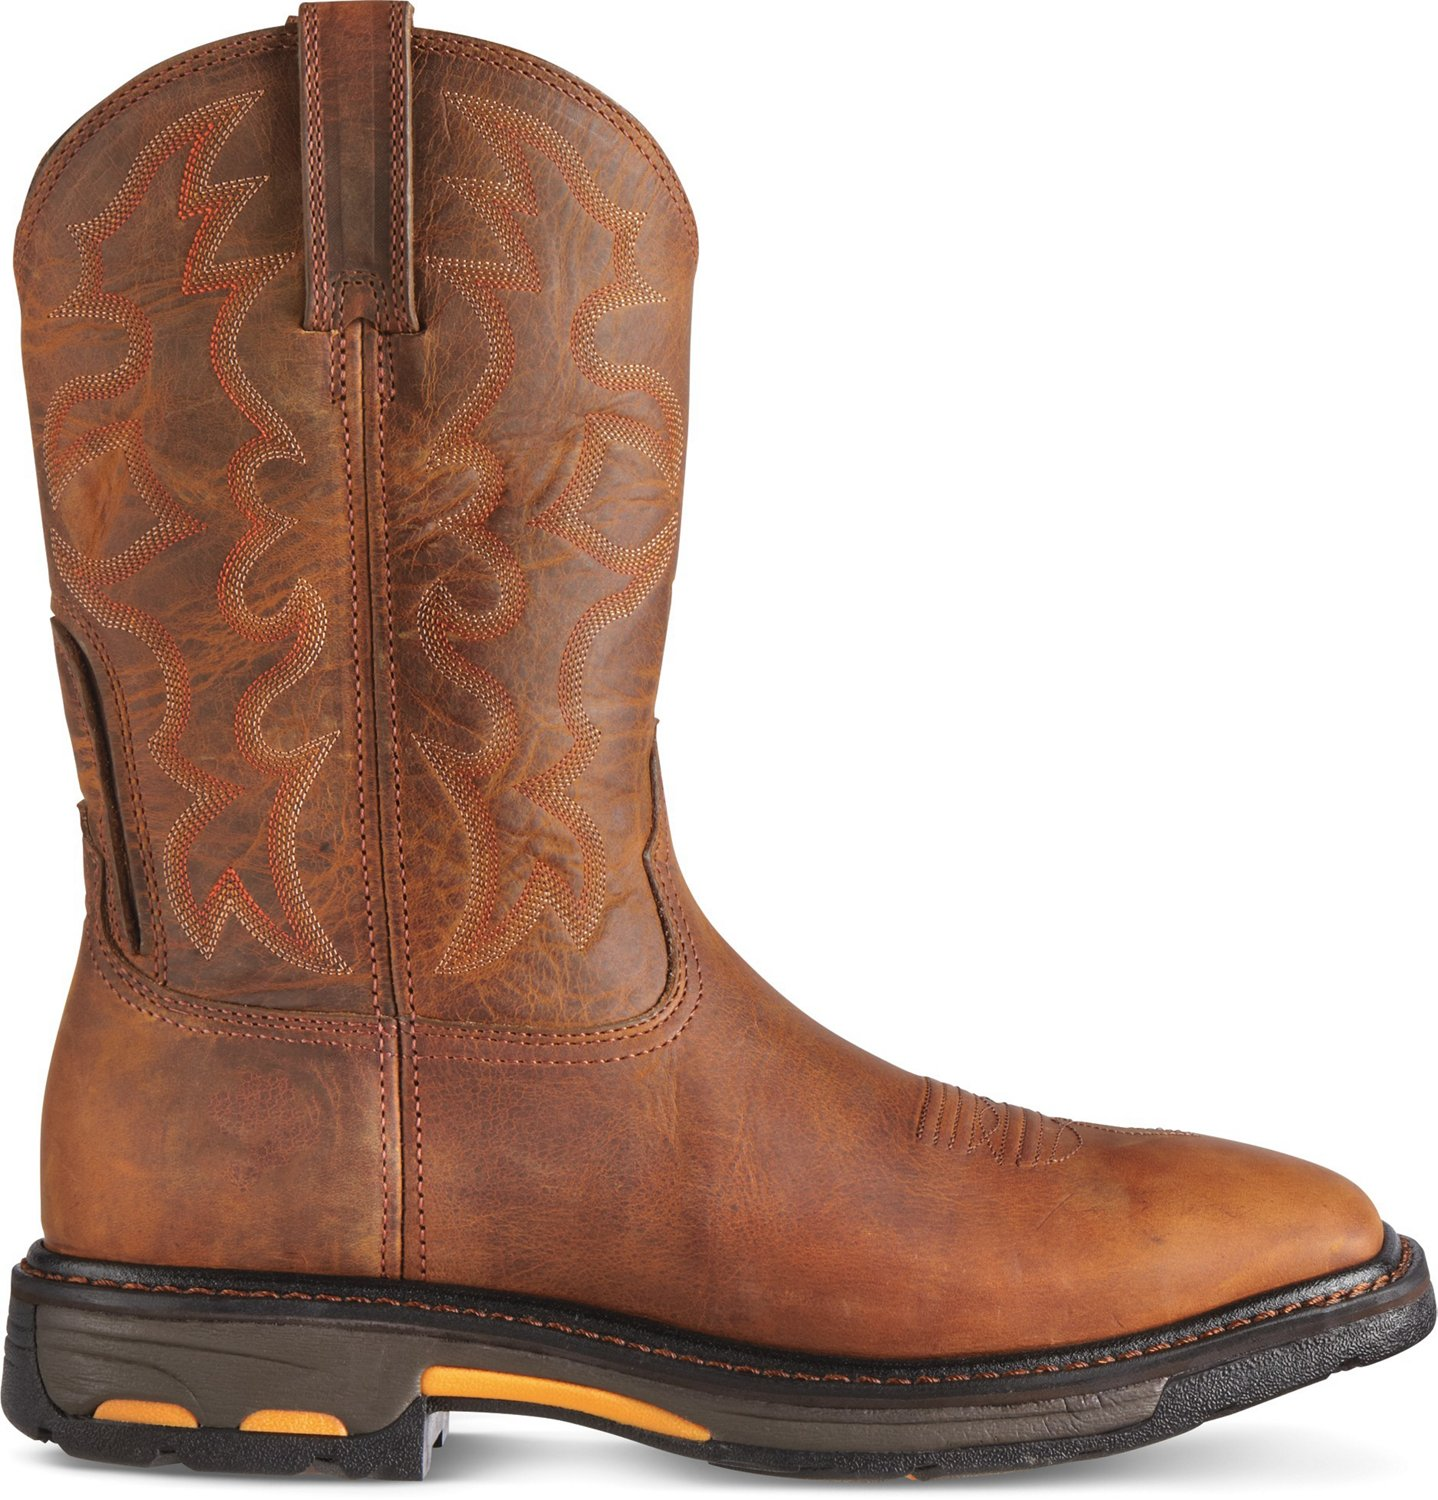 40d69443443 Display product reviews for Ariat Men s Workhog Steel Toe Western Work Boots